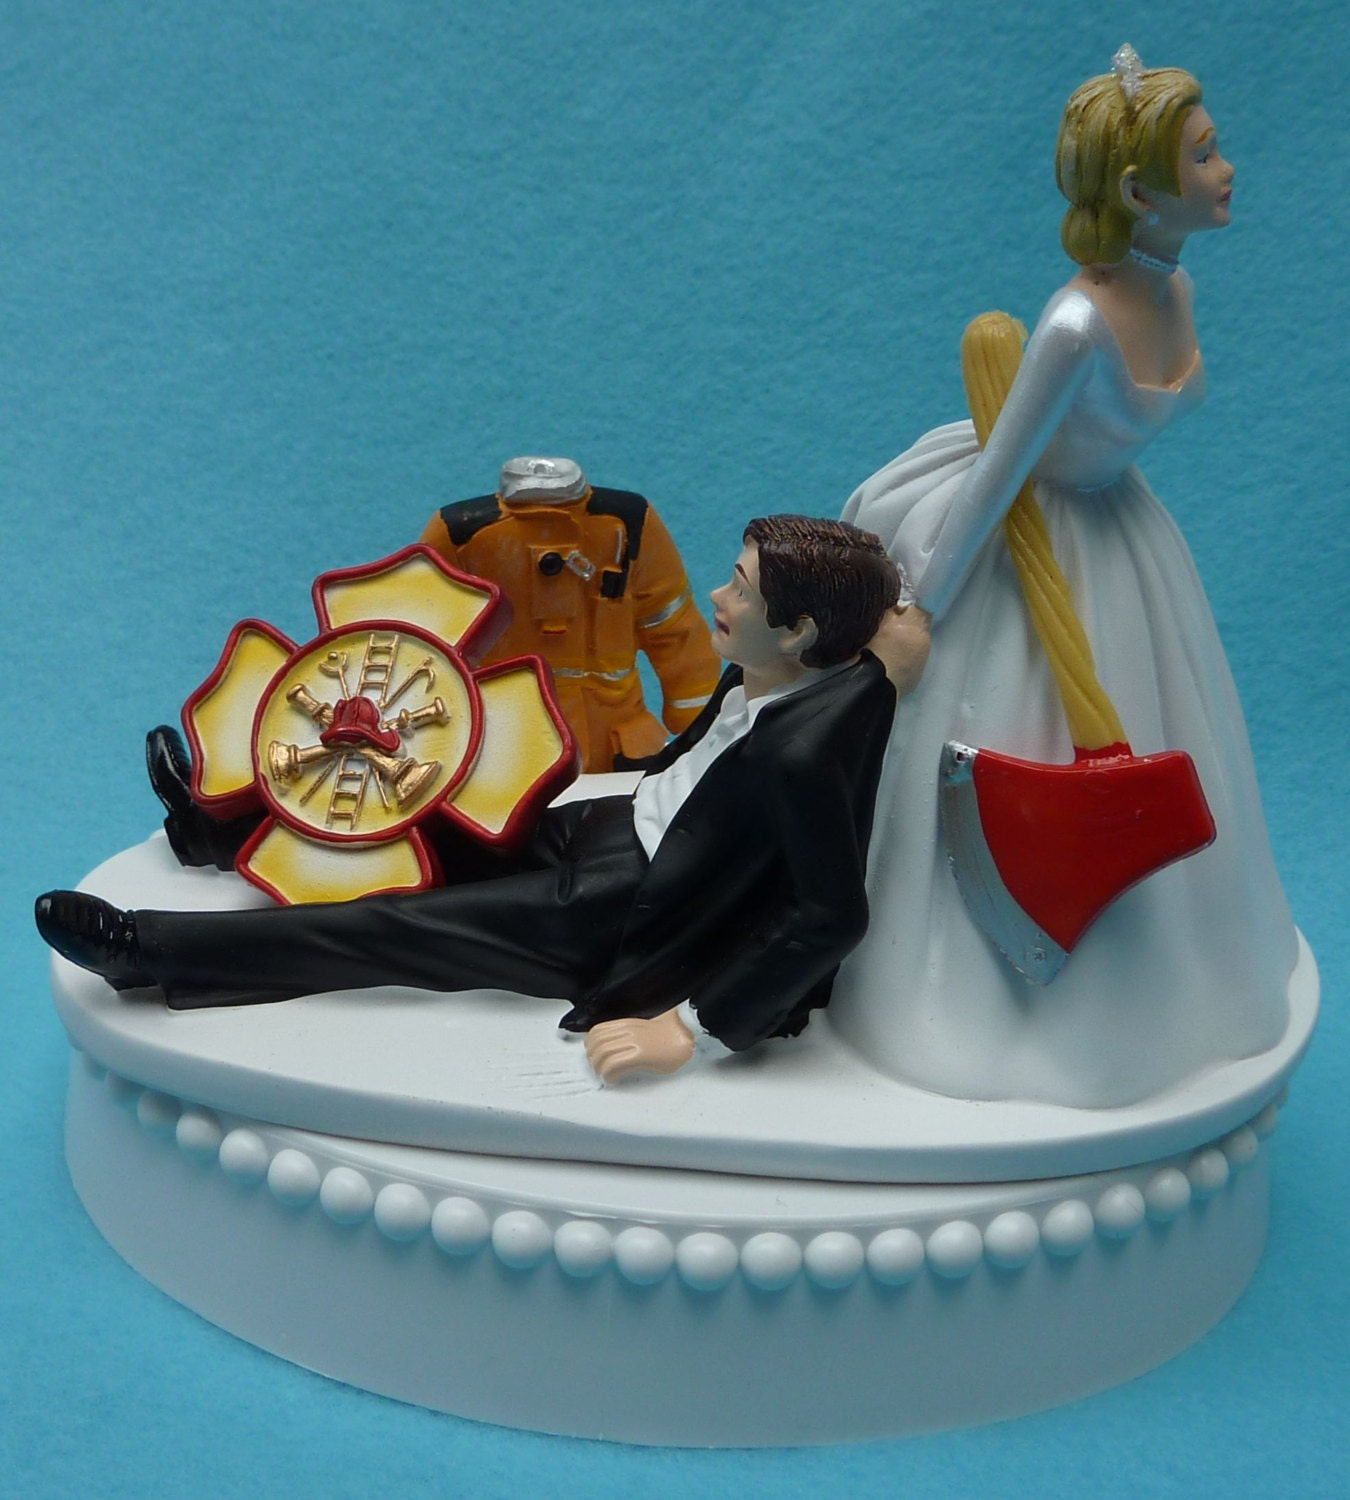 Firefighter Cake Toppers For Weddings